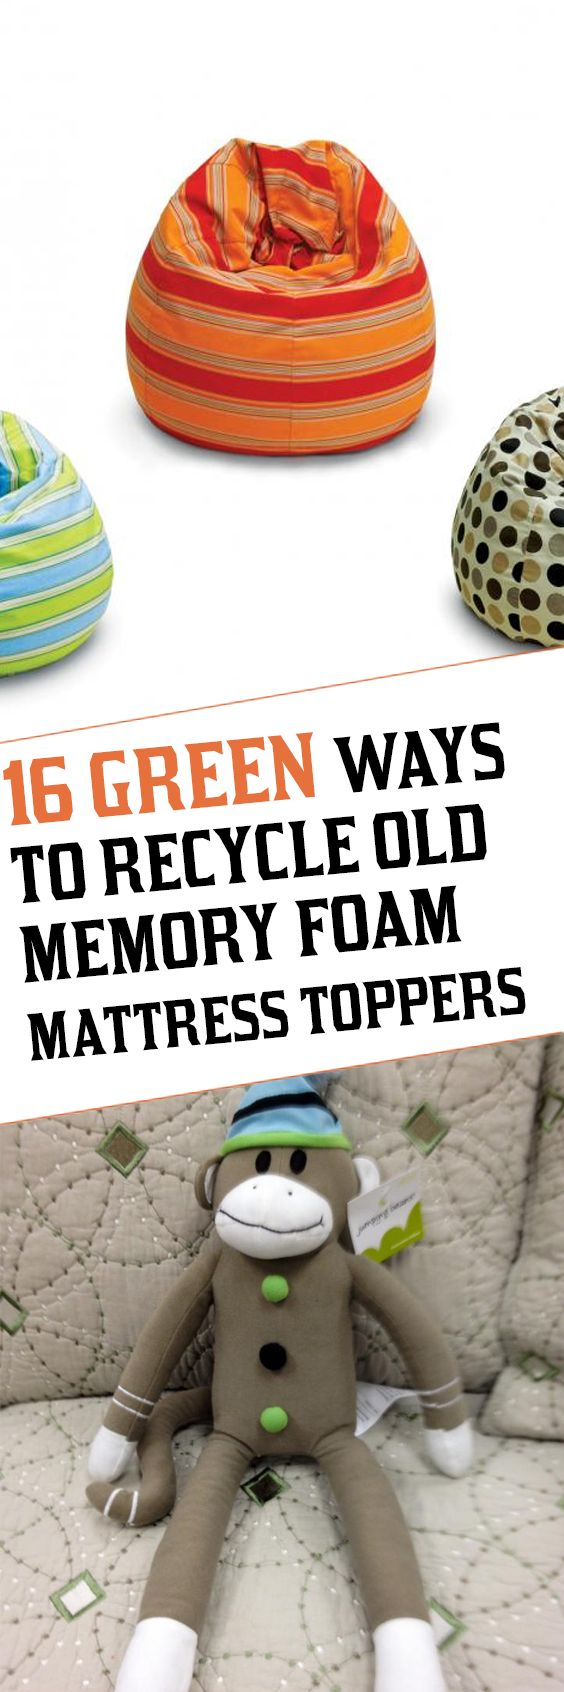 Memory foam for crafts - 16 Green Ways To Recycle Old Memory Foam Mattress Toppers